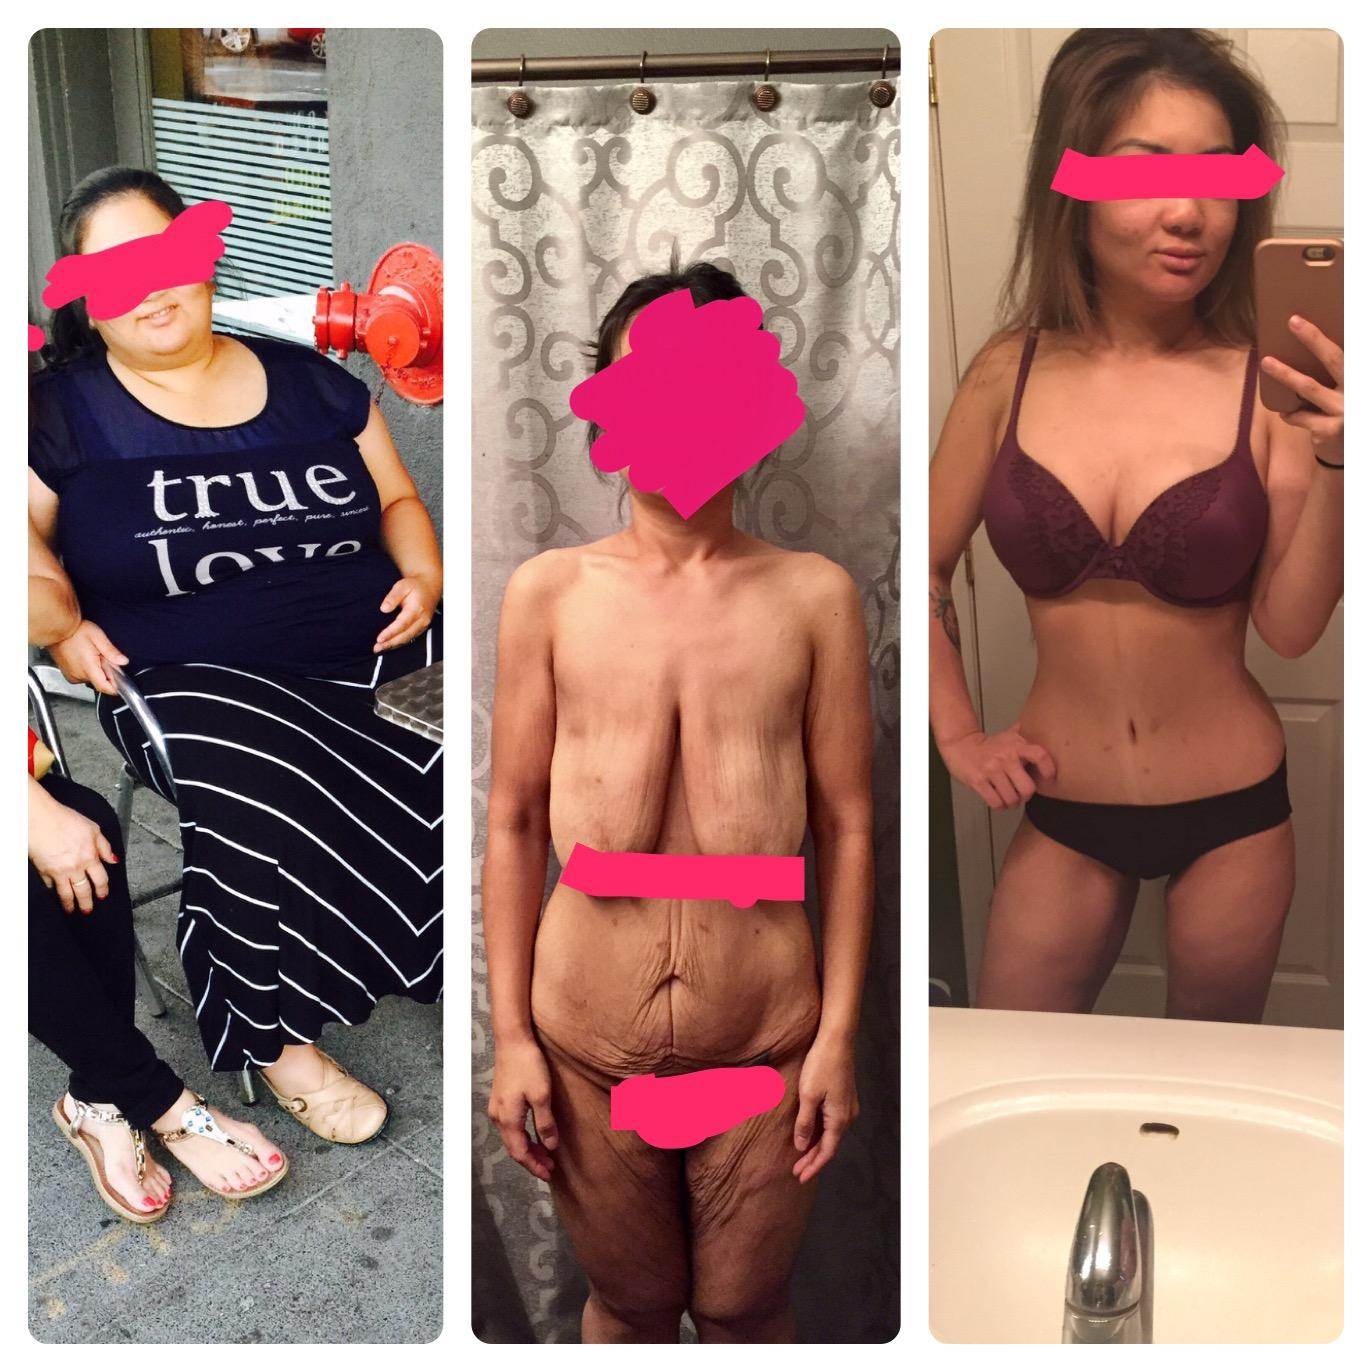 5'1 Female 157 lbs Weight Loss Before and After 270 lbs to 113 lbs